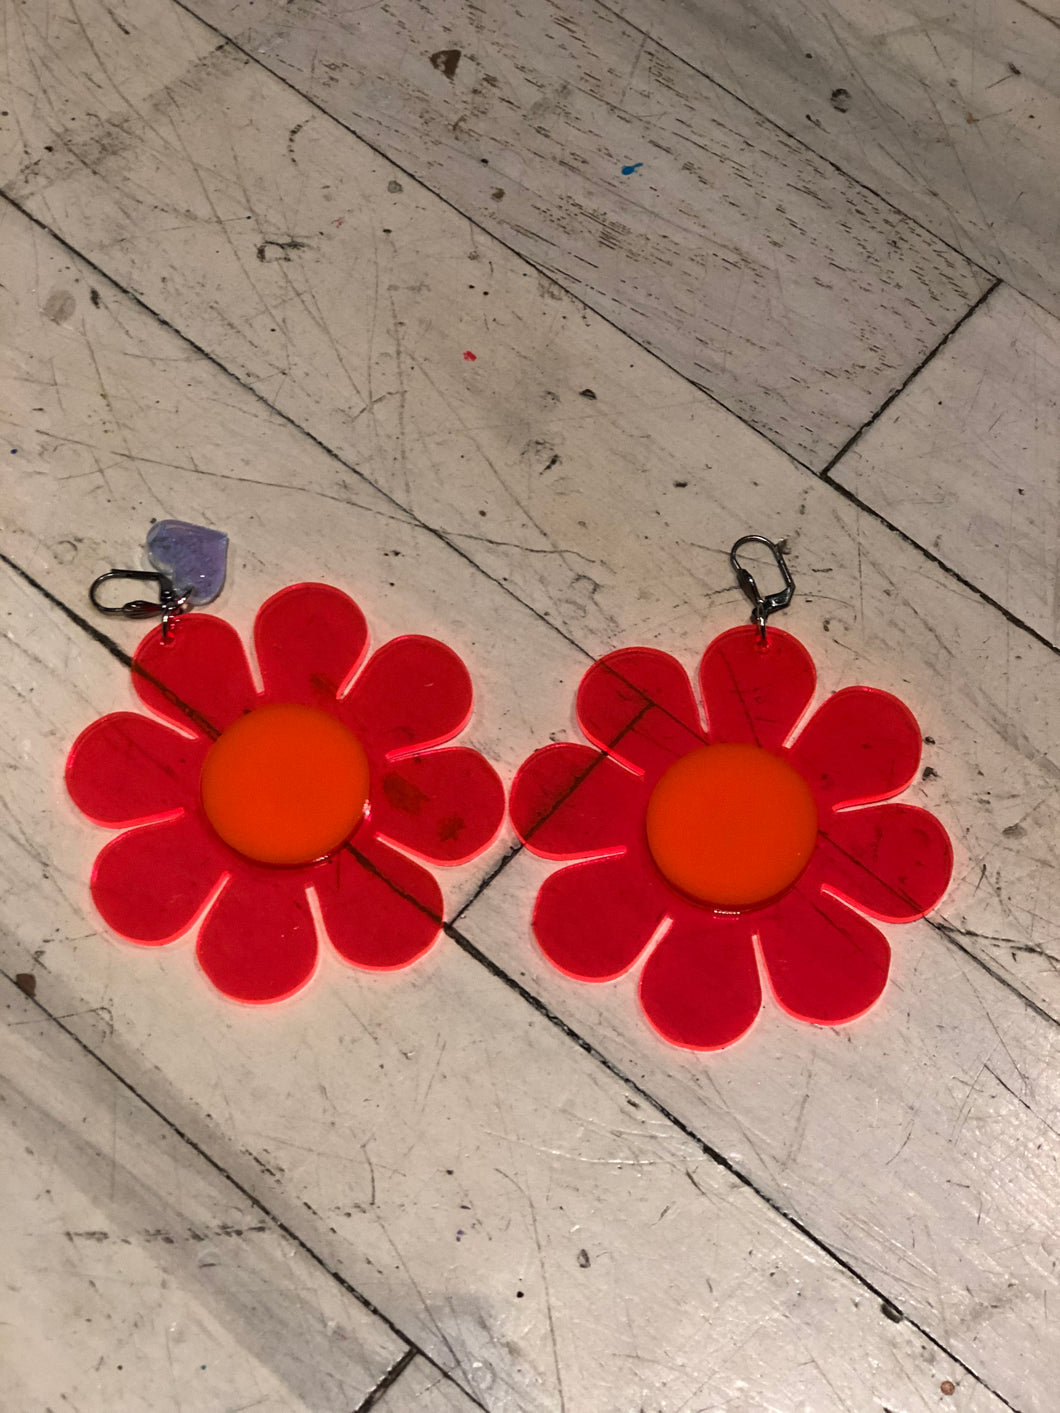 Neon Pinky Red Flower Power Earrings by Marina Fini - Spark Pretty